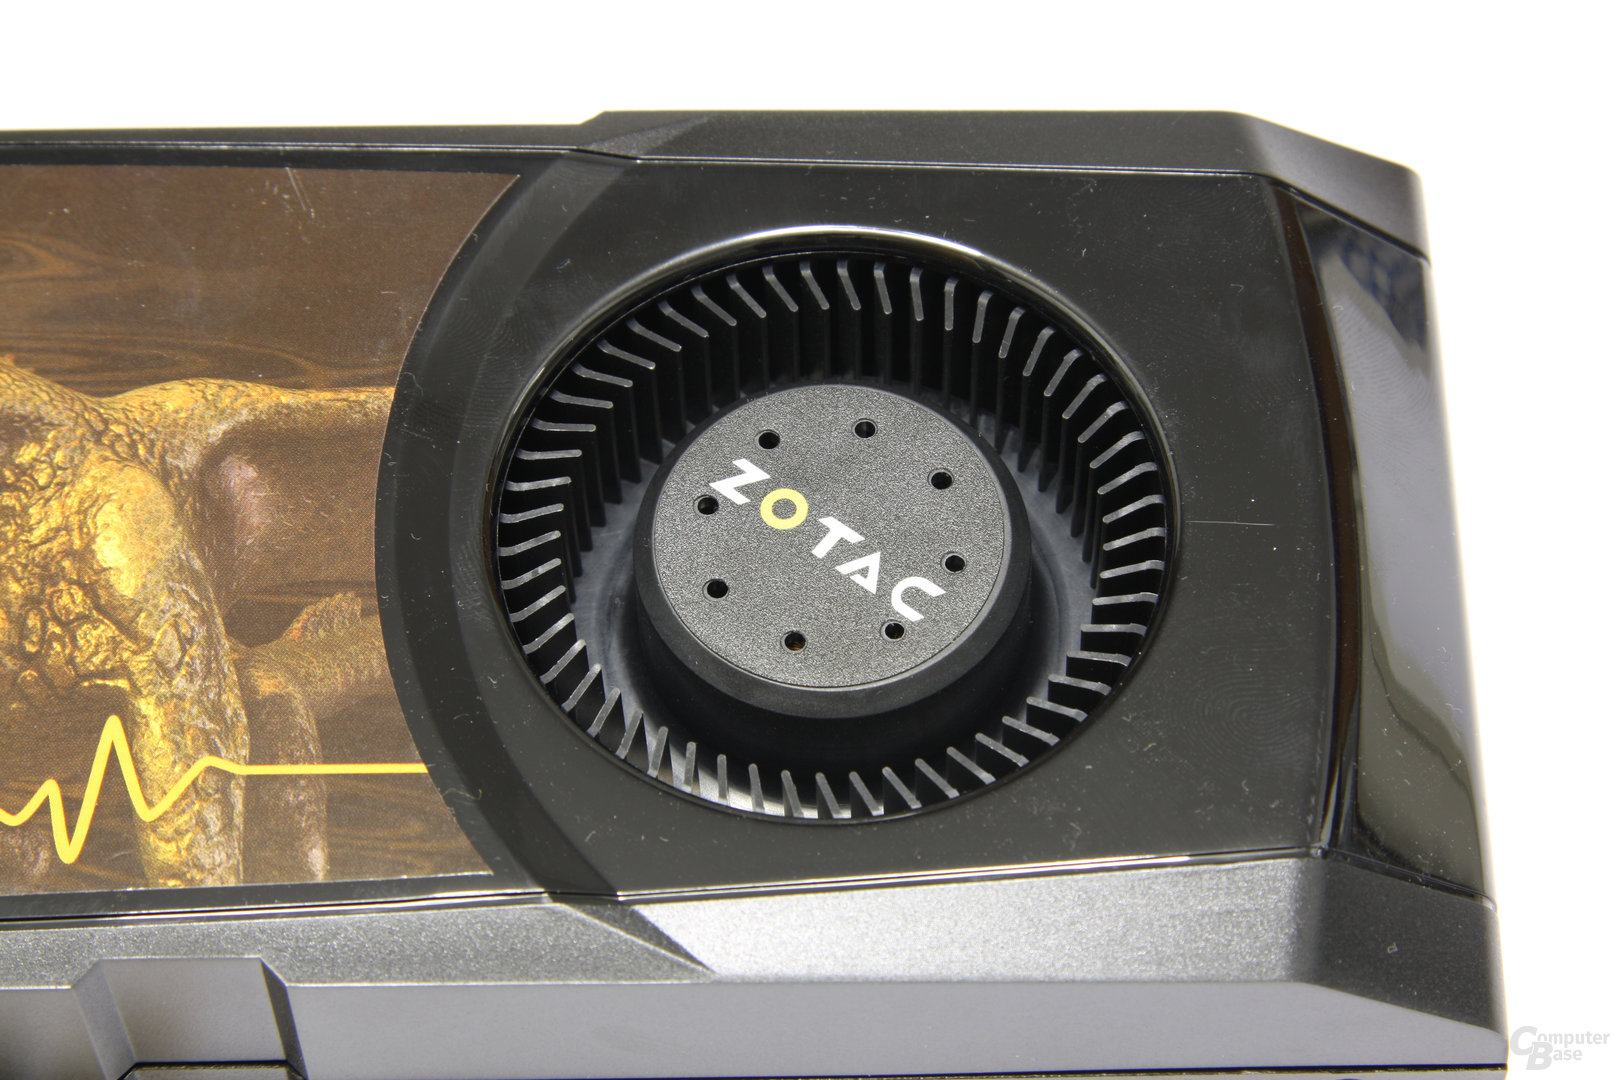 GeForce GTX 580 AMP! Lüfter